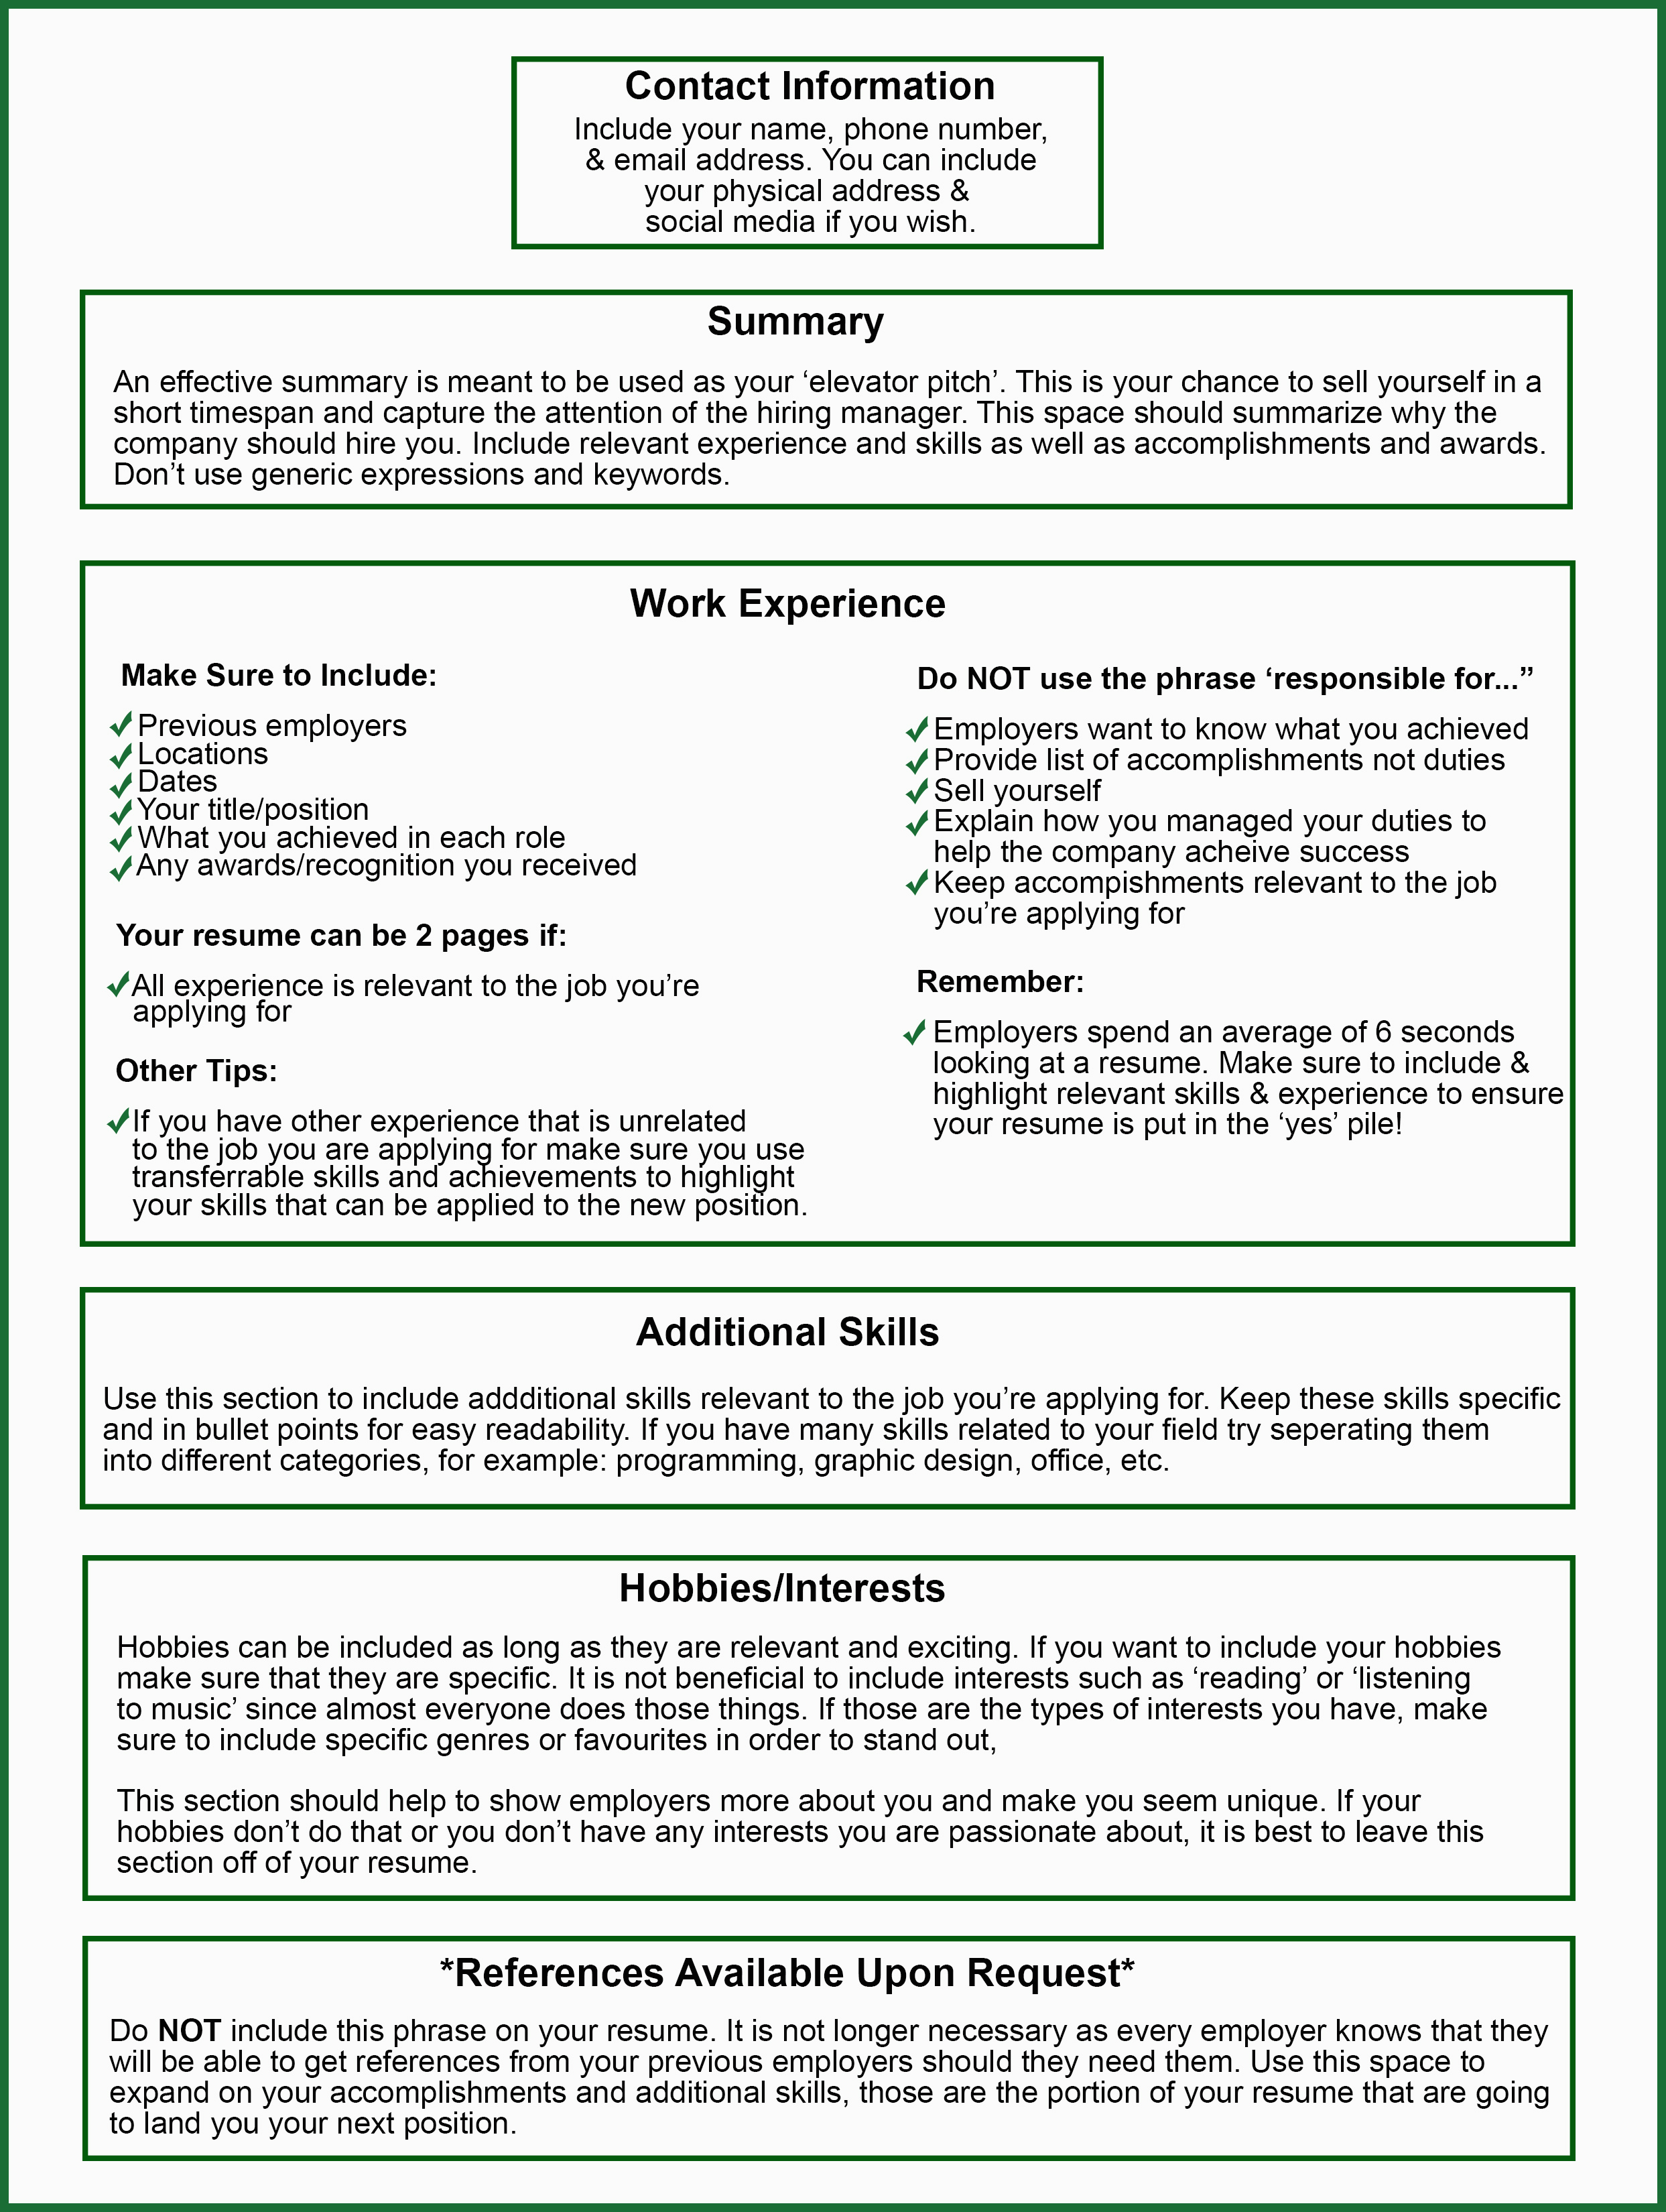 resume Things To Put On Your Resume what to put on your resume how write a creative market writing breakaway staffing